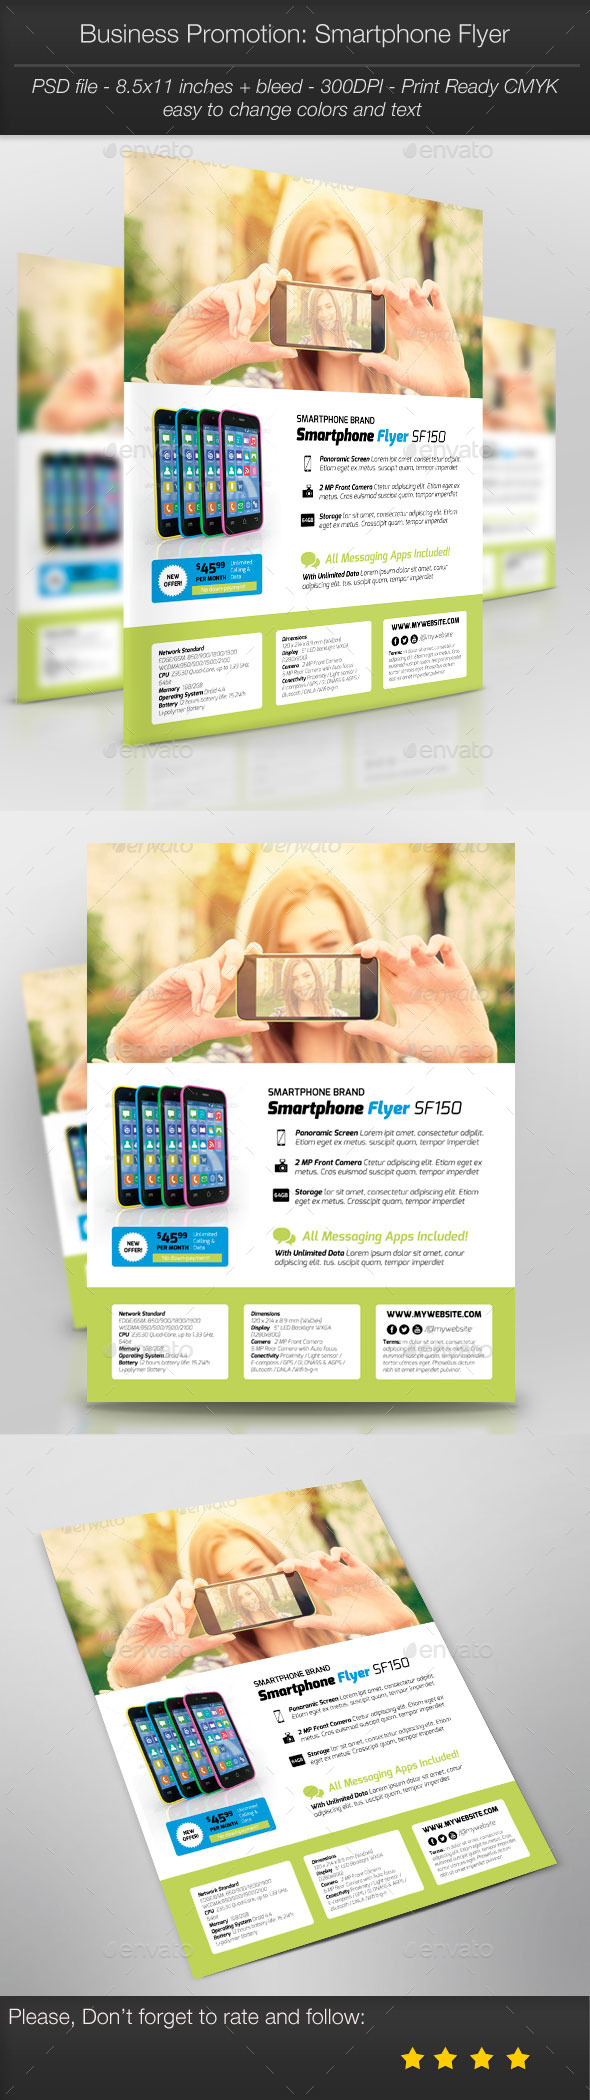 GraphicRiver Business Promotion Smartphone Flyer 11068675